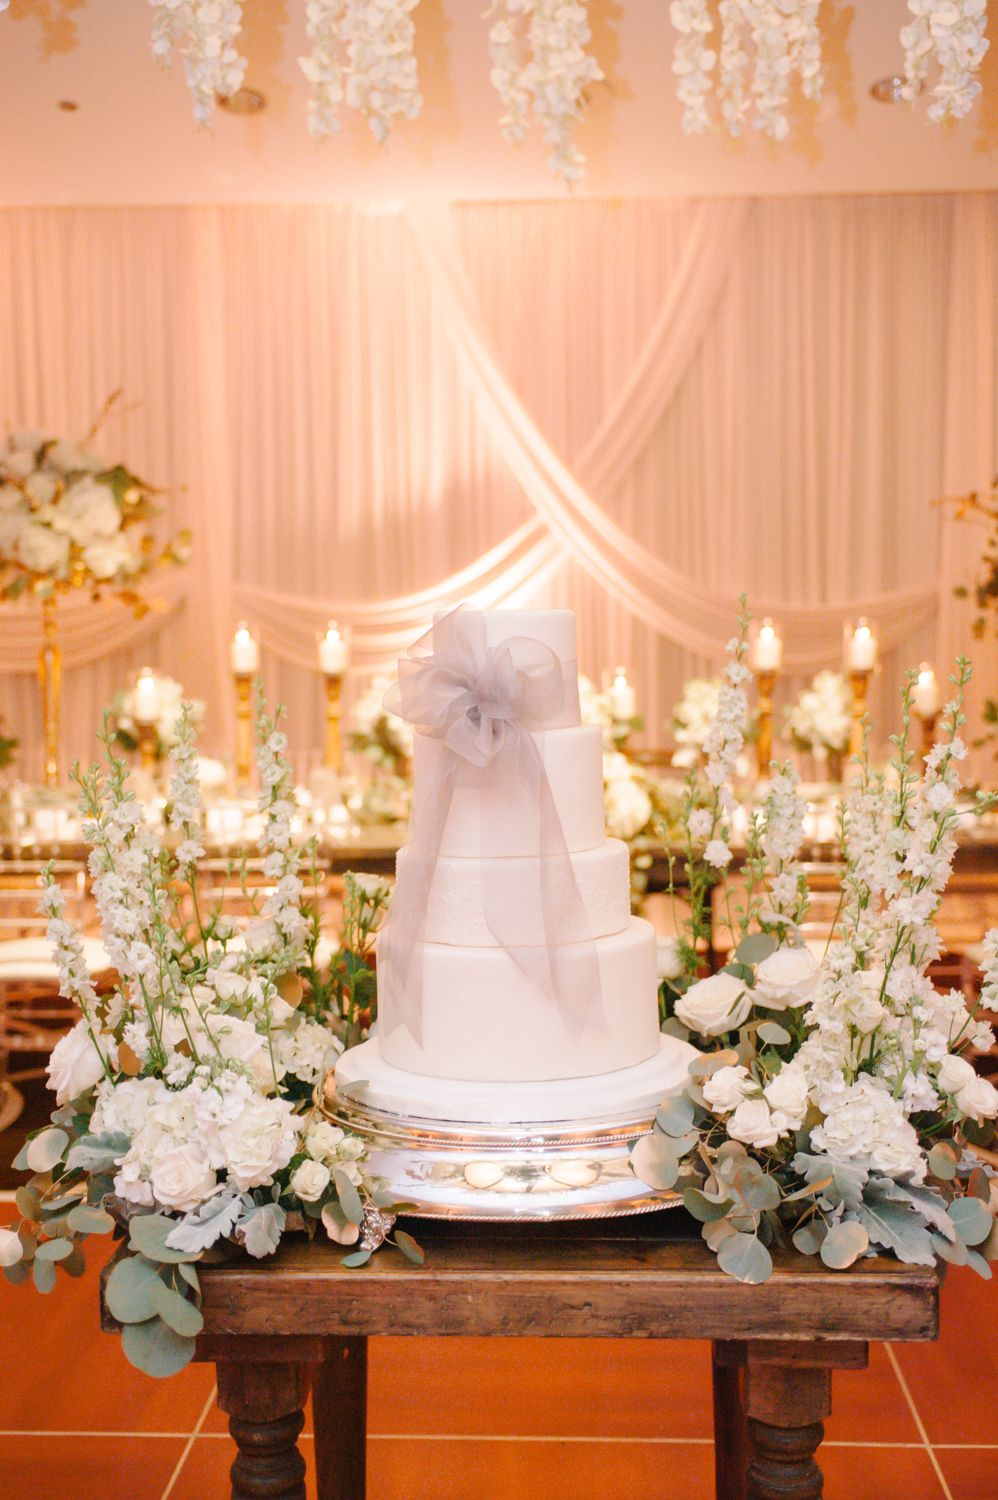 Events Floral Simply, Gwen Hotel Chicago wedding cake